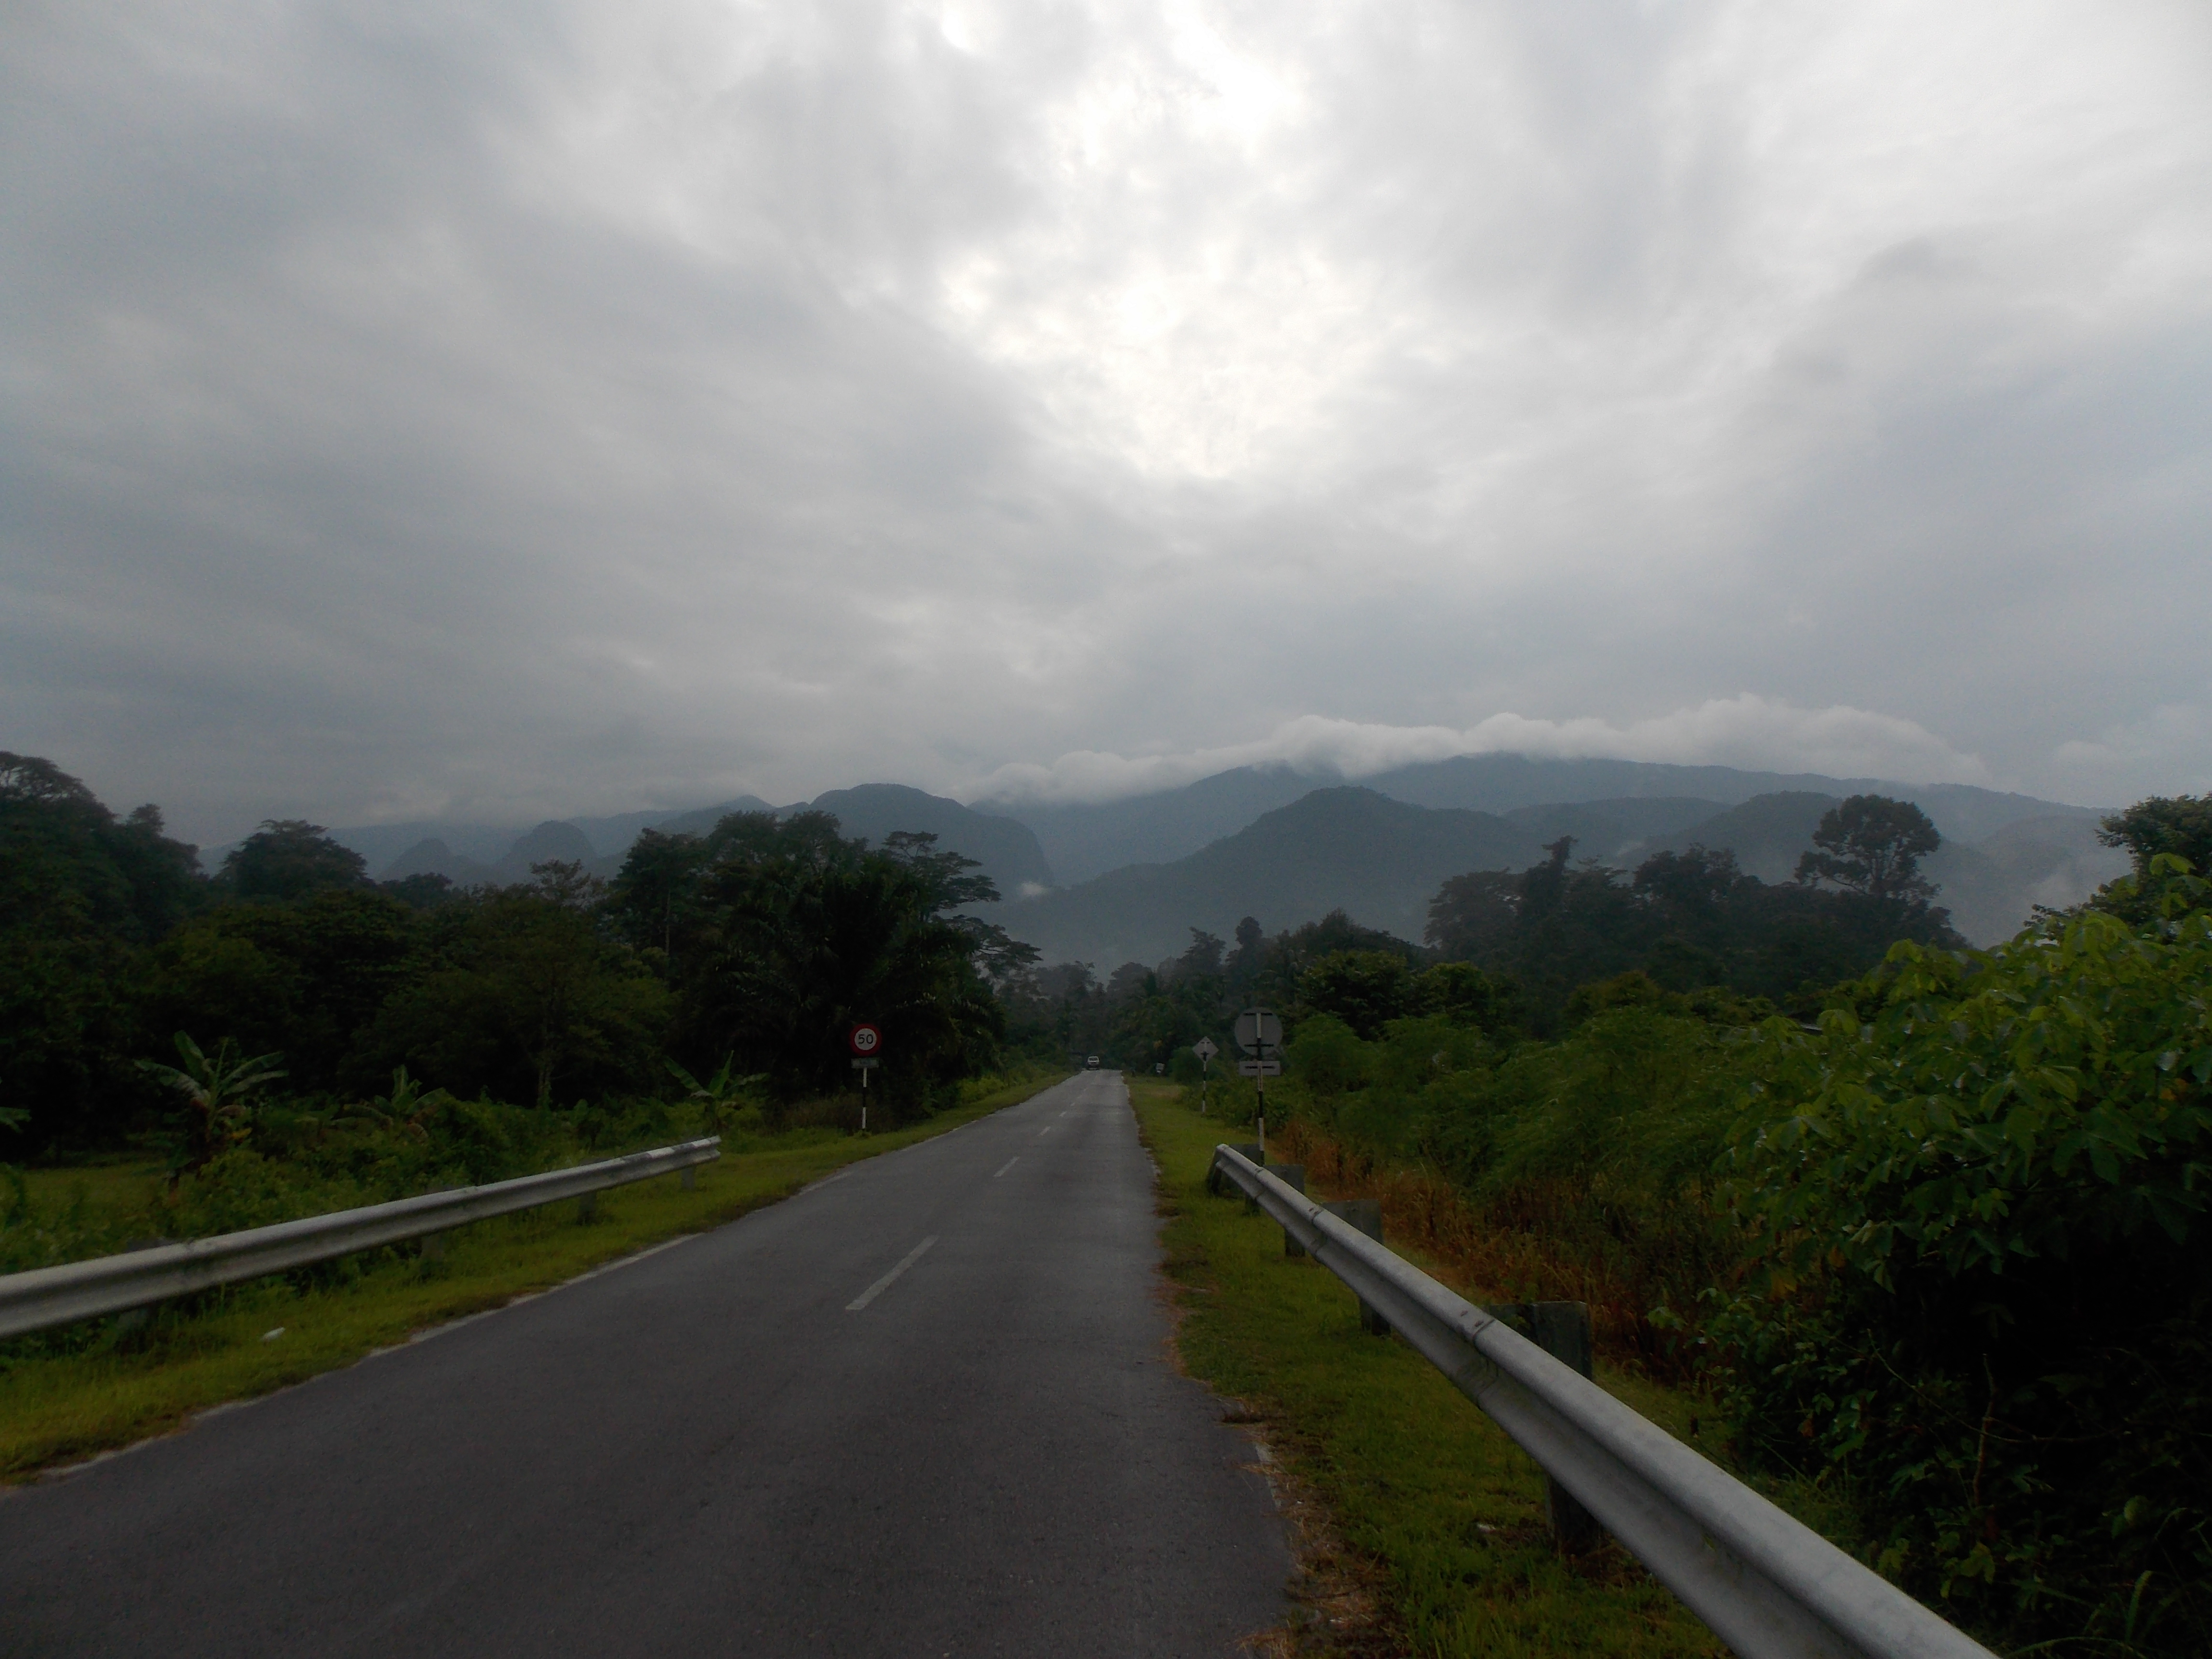 133 Between Park HQ and Mulu airport